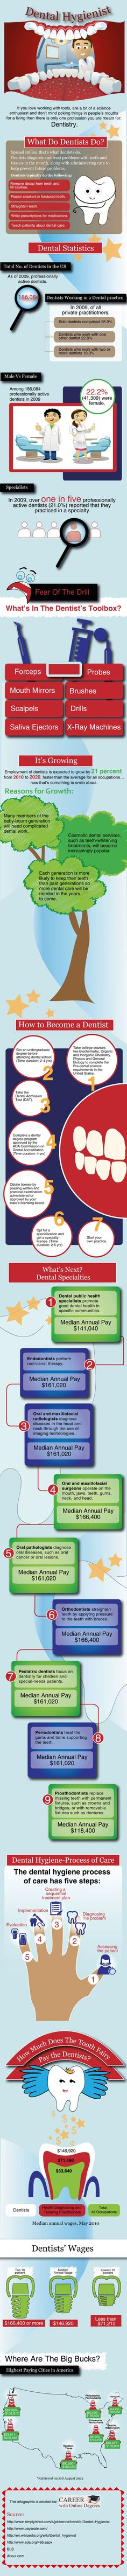 Dental Assistant Duties List%0A This is a great infographic outling who does what in a dental office